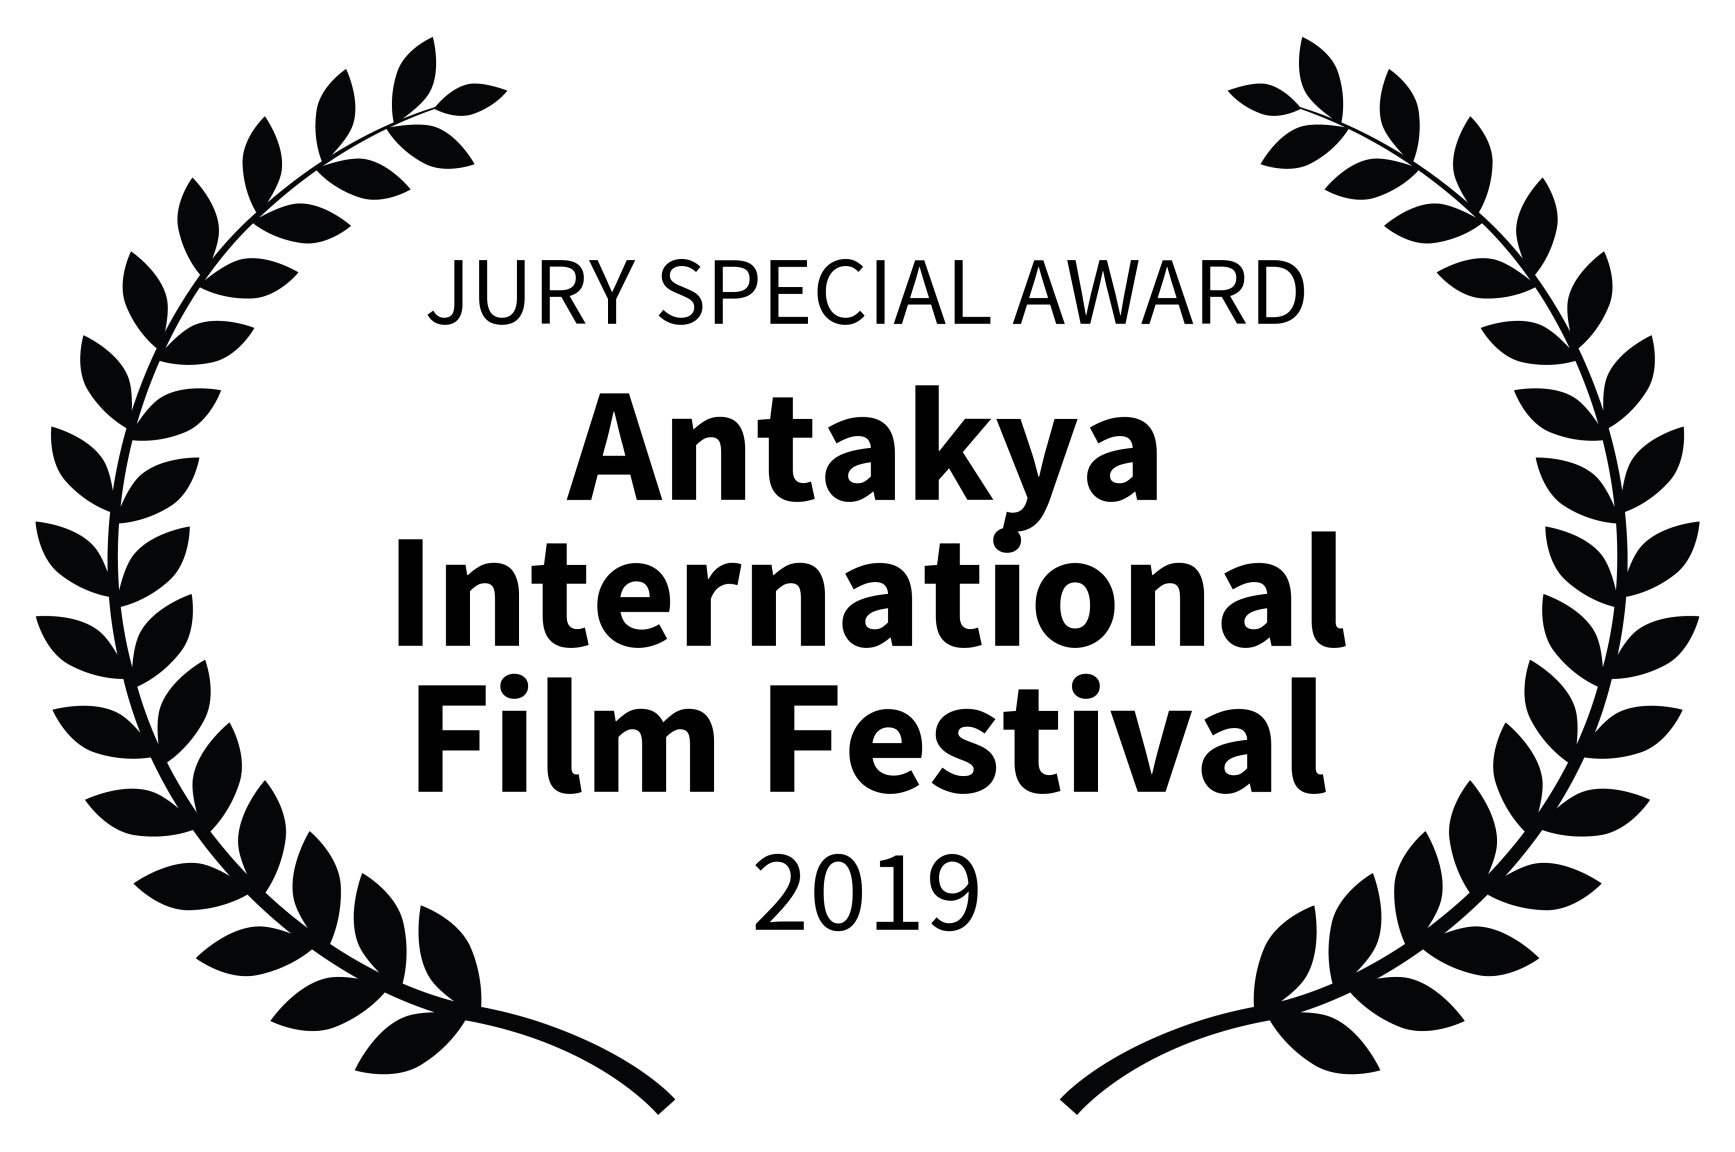 Antakya International Film Festival 2019